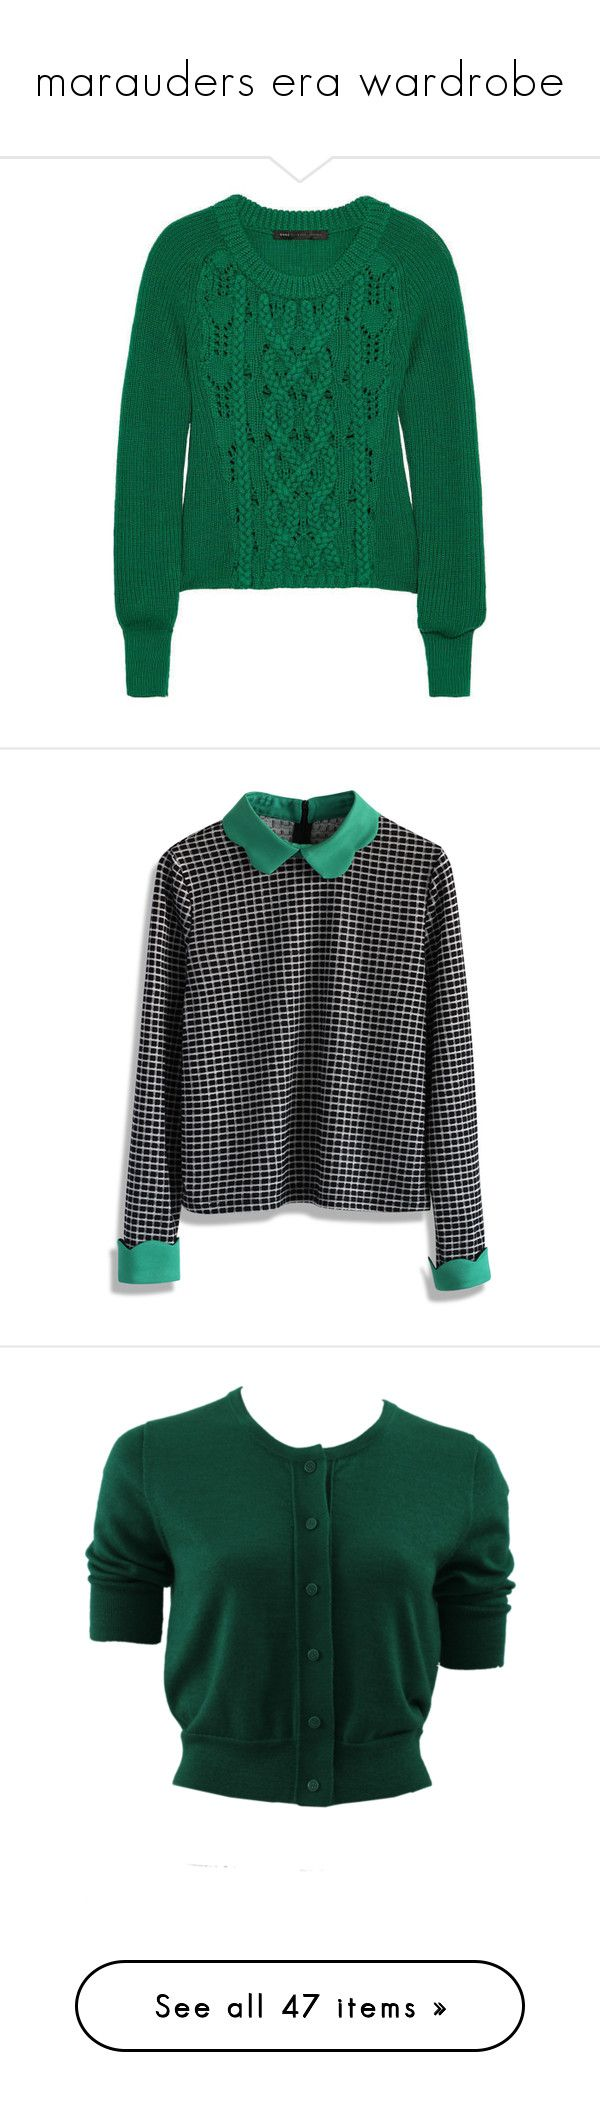 """""""marauders era wardrobe"""" by rebellious-ingenue ❤ liked on Polyvore featuring sweaters, tops, jumpers, shirts, multi, scalloped shirt, tartan plaid shirt, shirt top, plaid collared shirts and plaid top"""